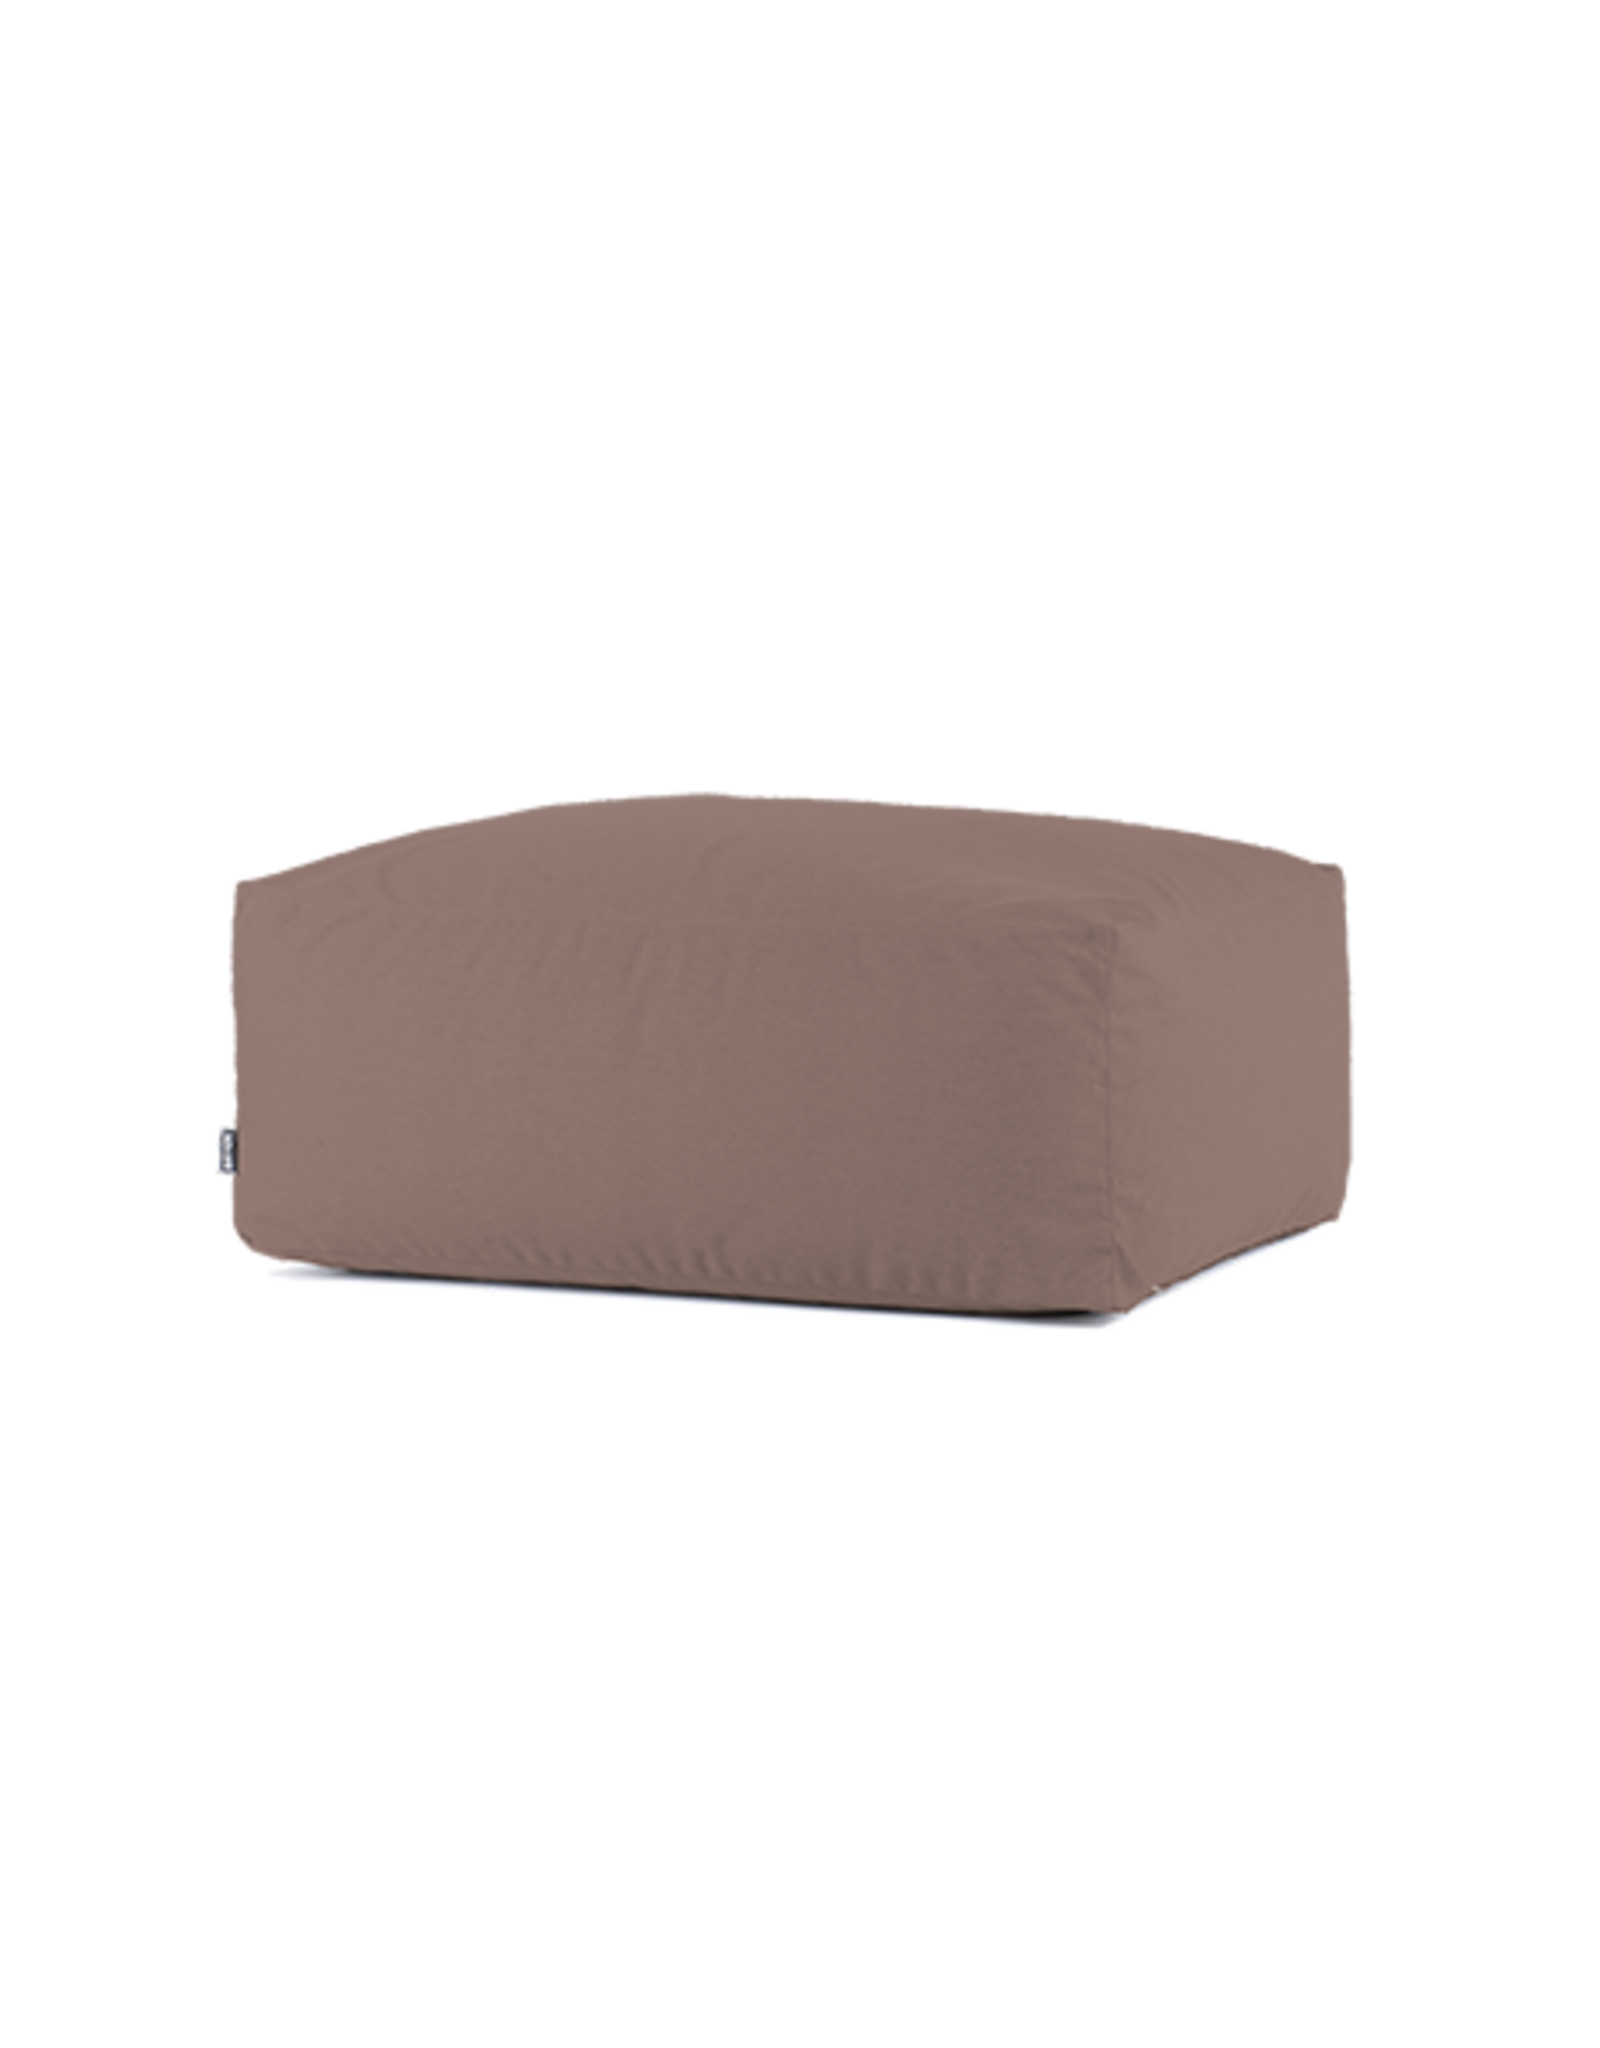 Bryck Bryck - hocker - Smooth collection - Light Brown